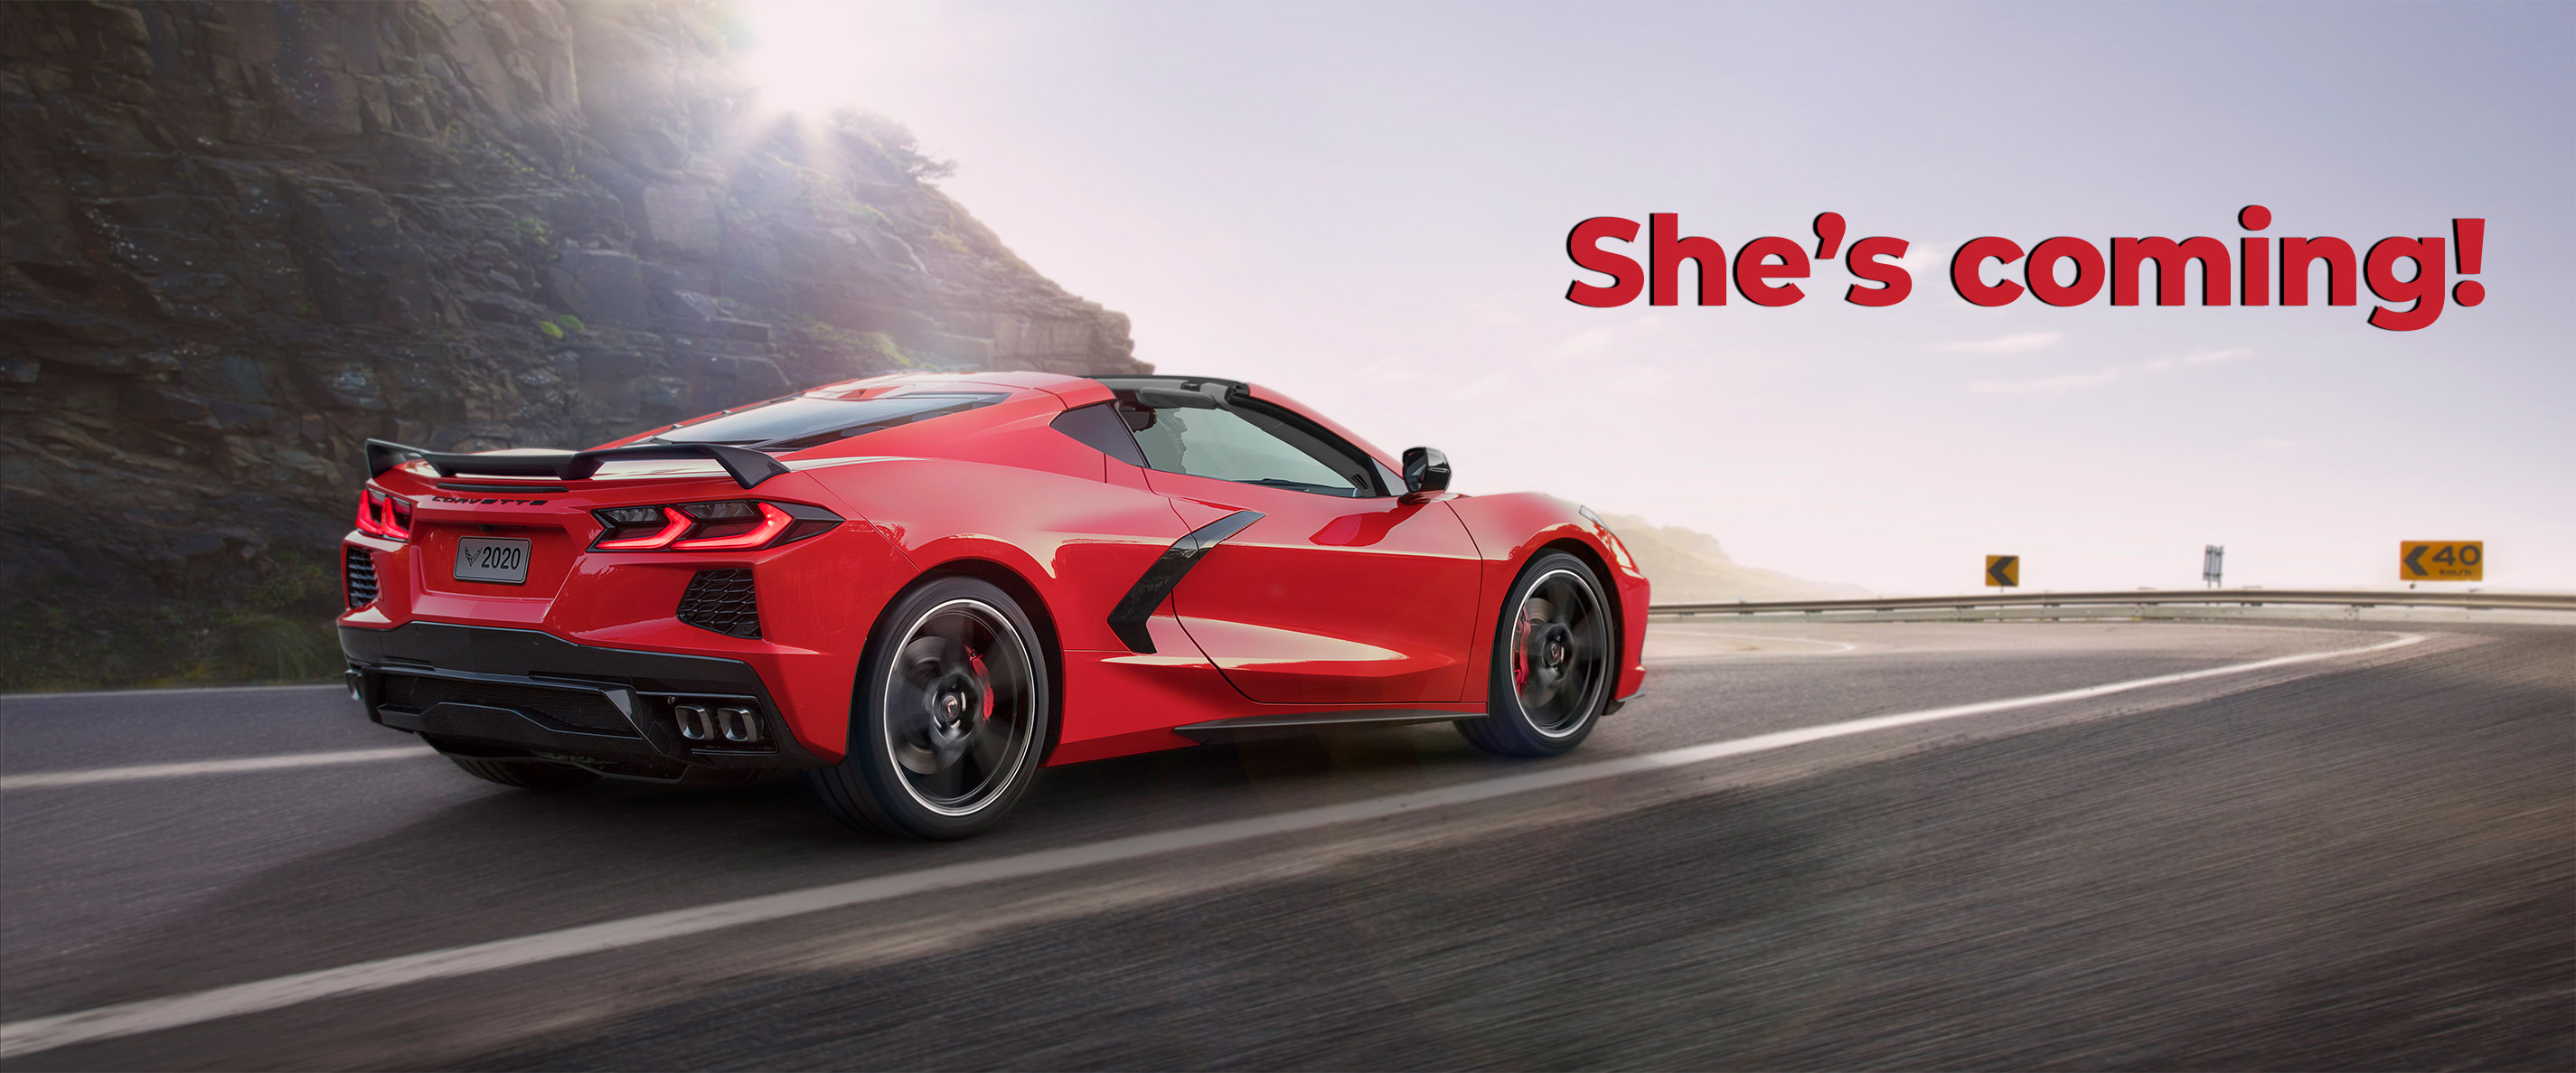 C8 Corvette Aims to Turn Industry on its Head